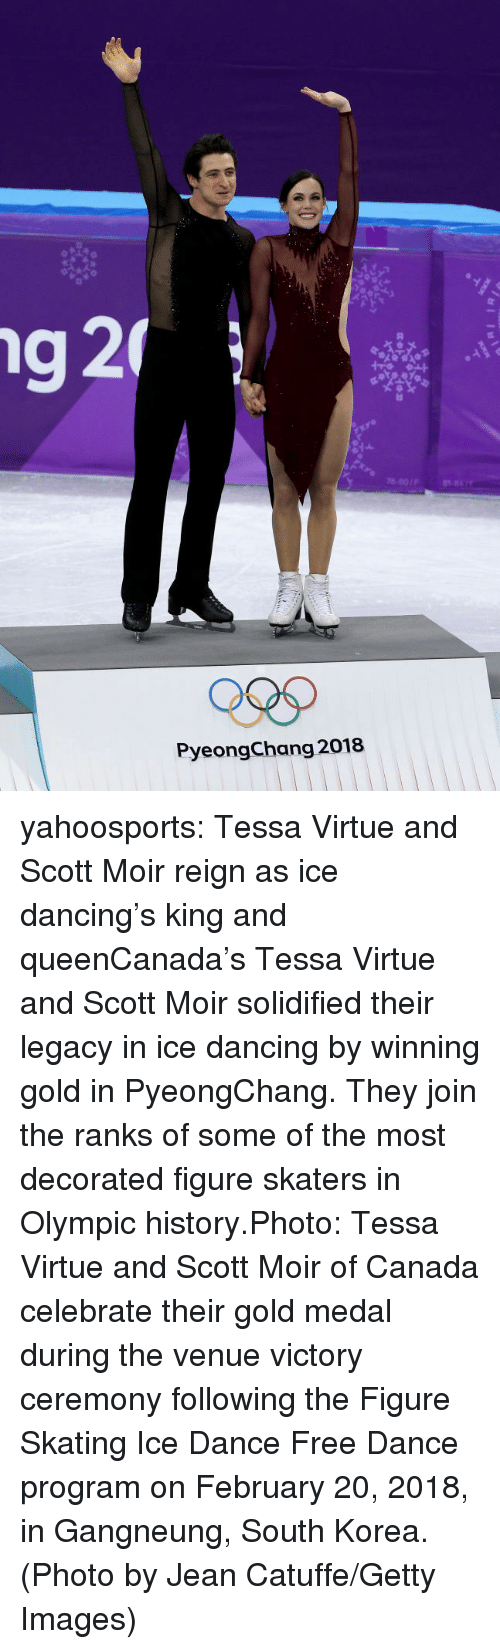 skaters: 78-801F  PyeongChang 2018 yahoosports:  Tessa Virtue and Scott Moir reign as ice dancing's king and queenCanada's Tessa Virtue and Scott Moir solidified their legacy in ice dancing by winning gold in PyeongChang. They join the ranks of some of the most decorated figure skaters in Olympic history.Photo:Tessa Virtue and Scott Moir of Canada celebrate their gold medal during the venue victory ceremony following the Figure Skating Ice Dance Free Dance program on February 20, 2018, in Gangneung, South Korea. (Photo by Jean Catuffe/Getty Images)